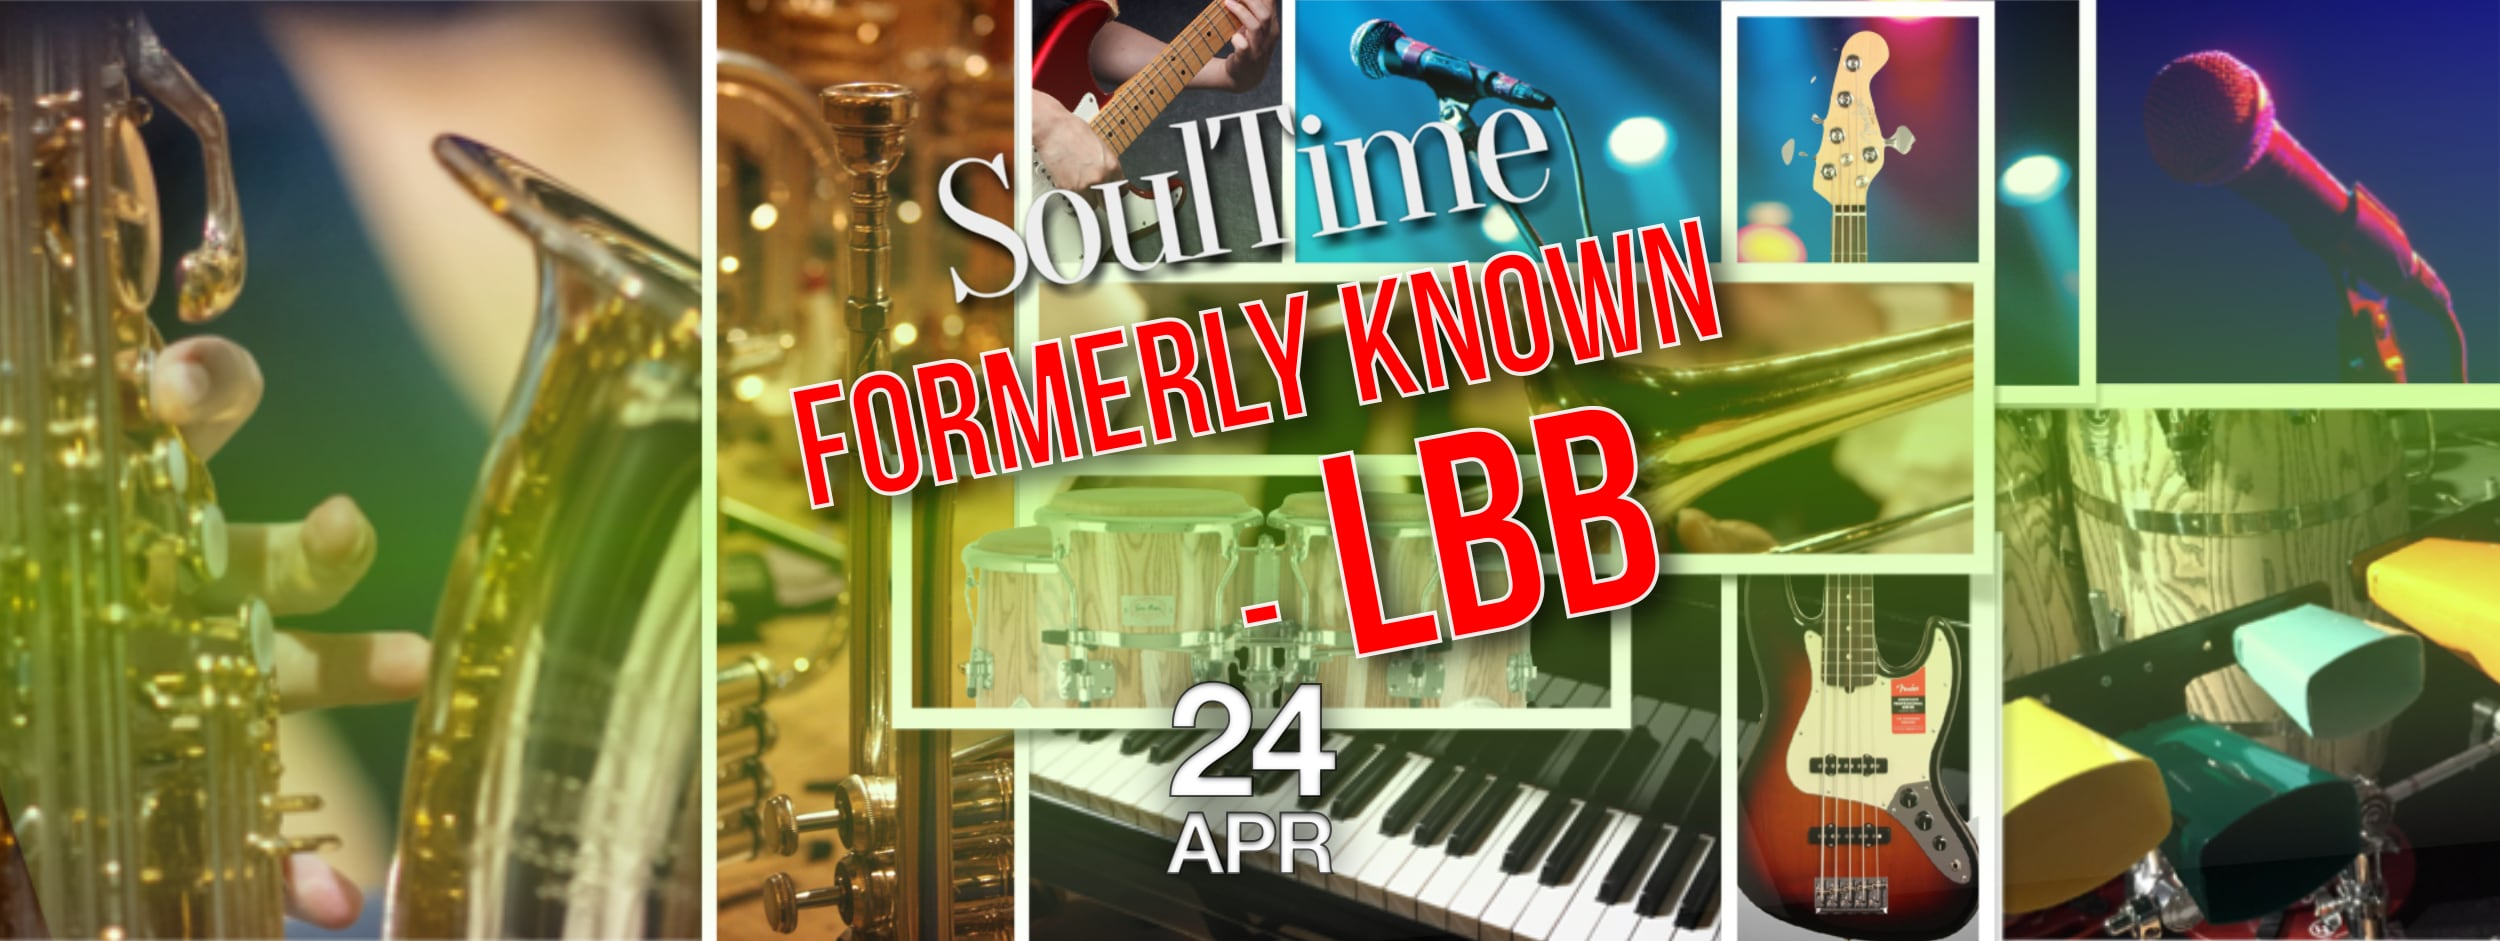 Formarly Known-LBB-apr2019